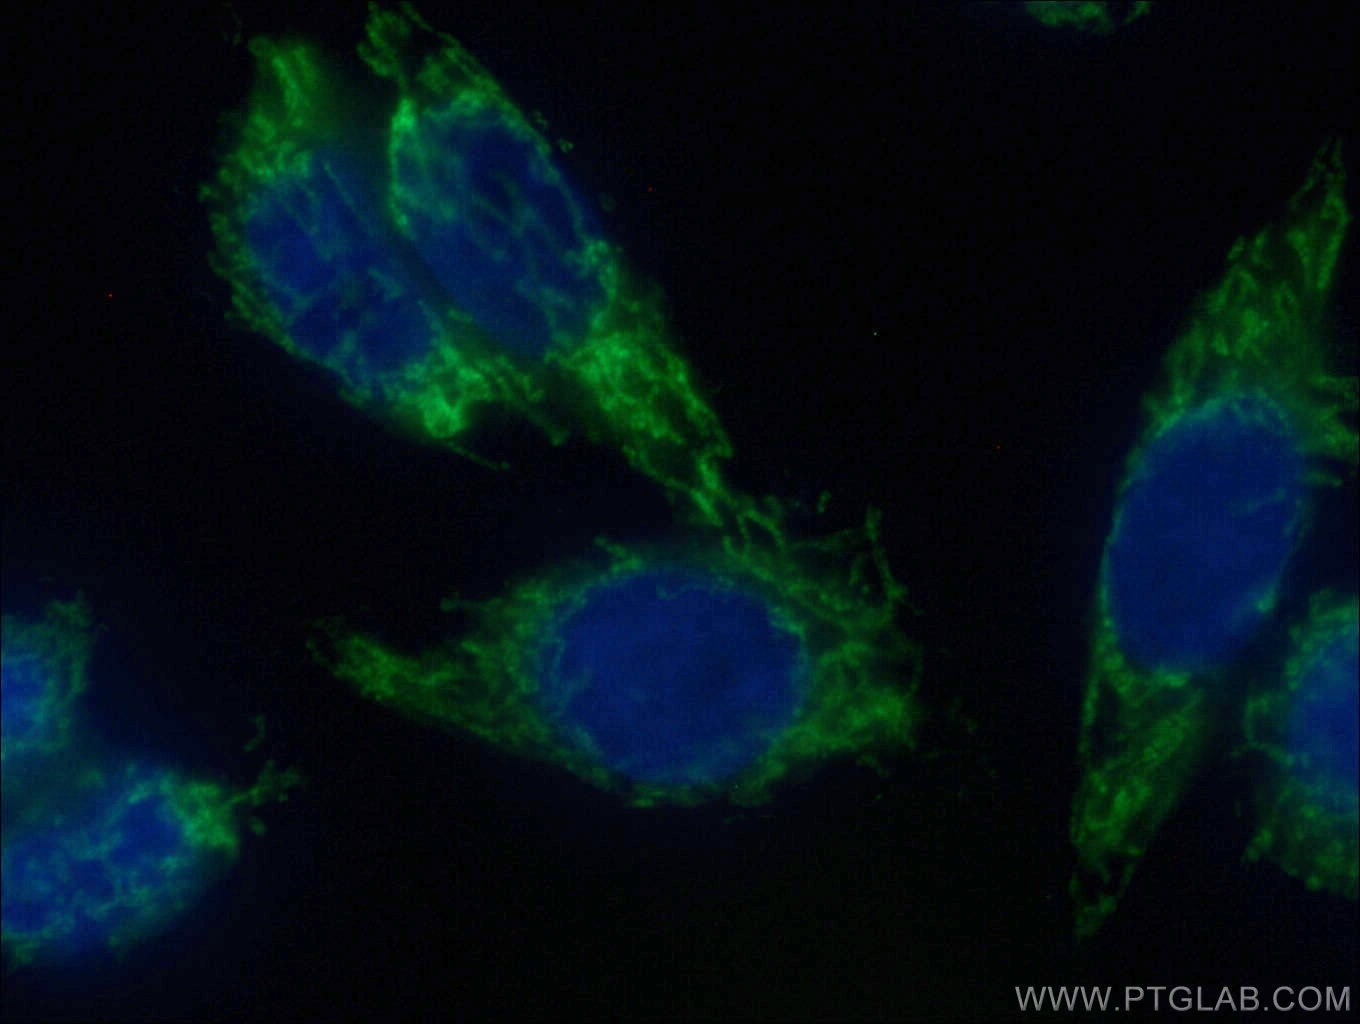 IF Staining of HeLa using CL488-14341